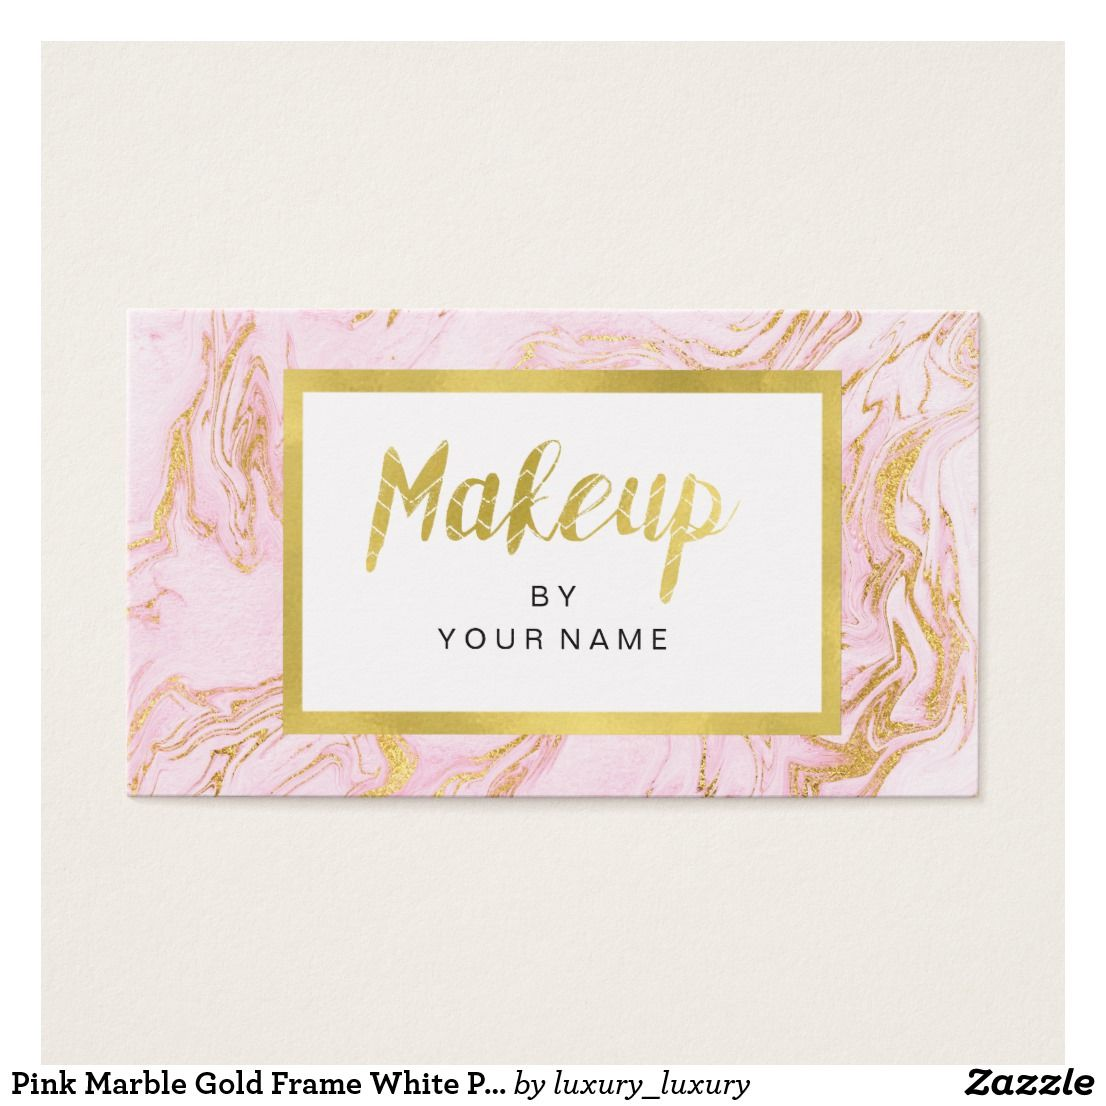 Pink Marble Gold Frame White Pink Makeup Artist Business